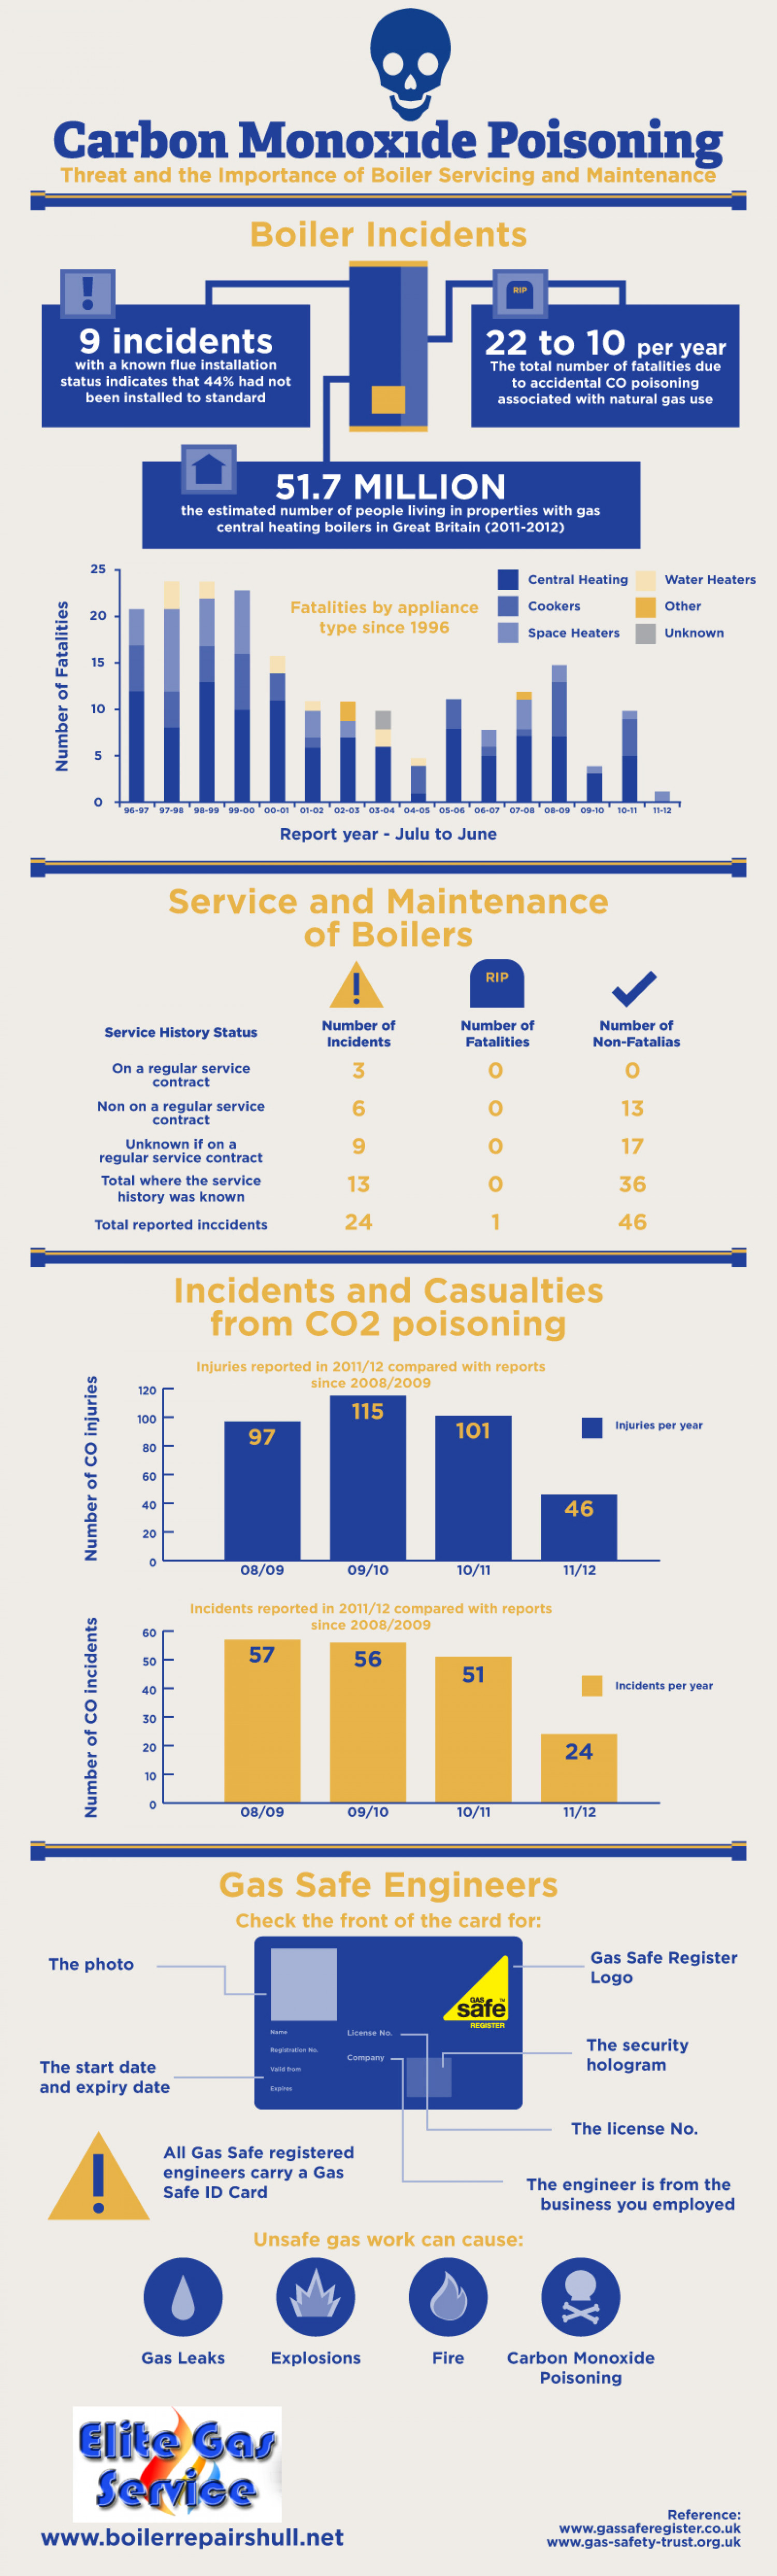 Carbon Monoxide Poisoning: Threat and the Importance of Boiler Servicing and Maintenance Infographic